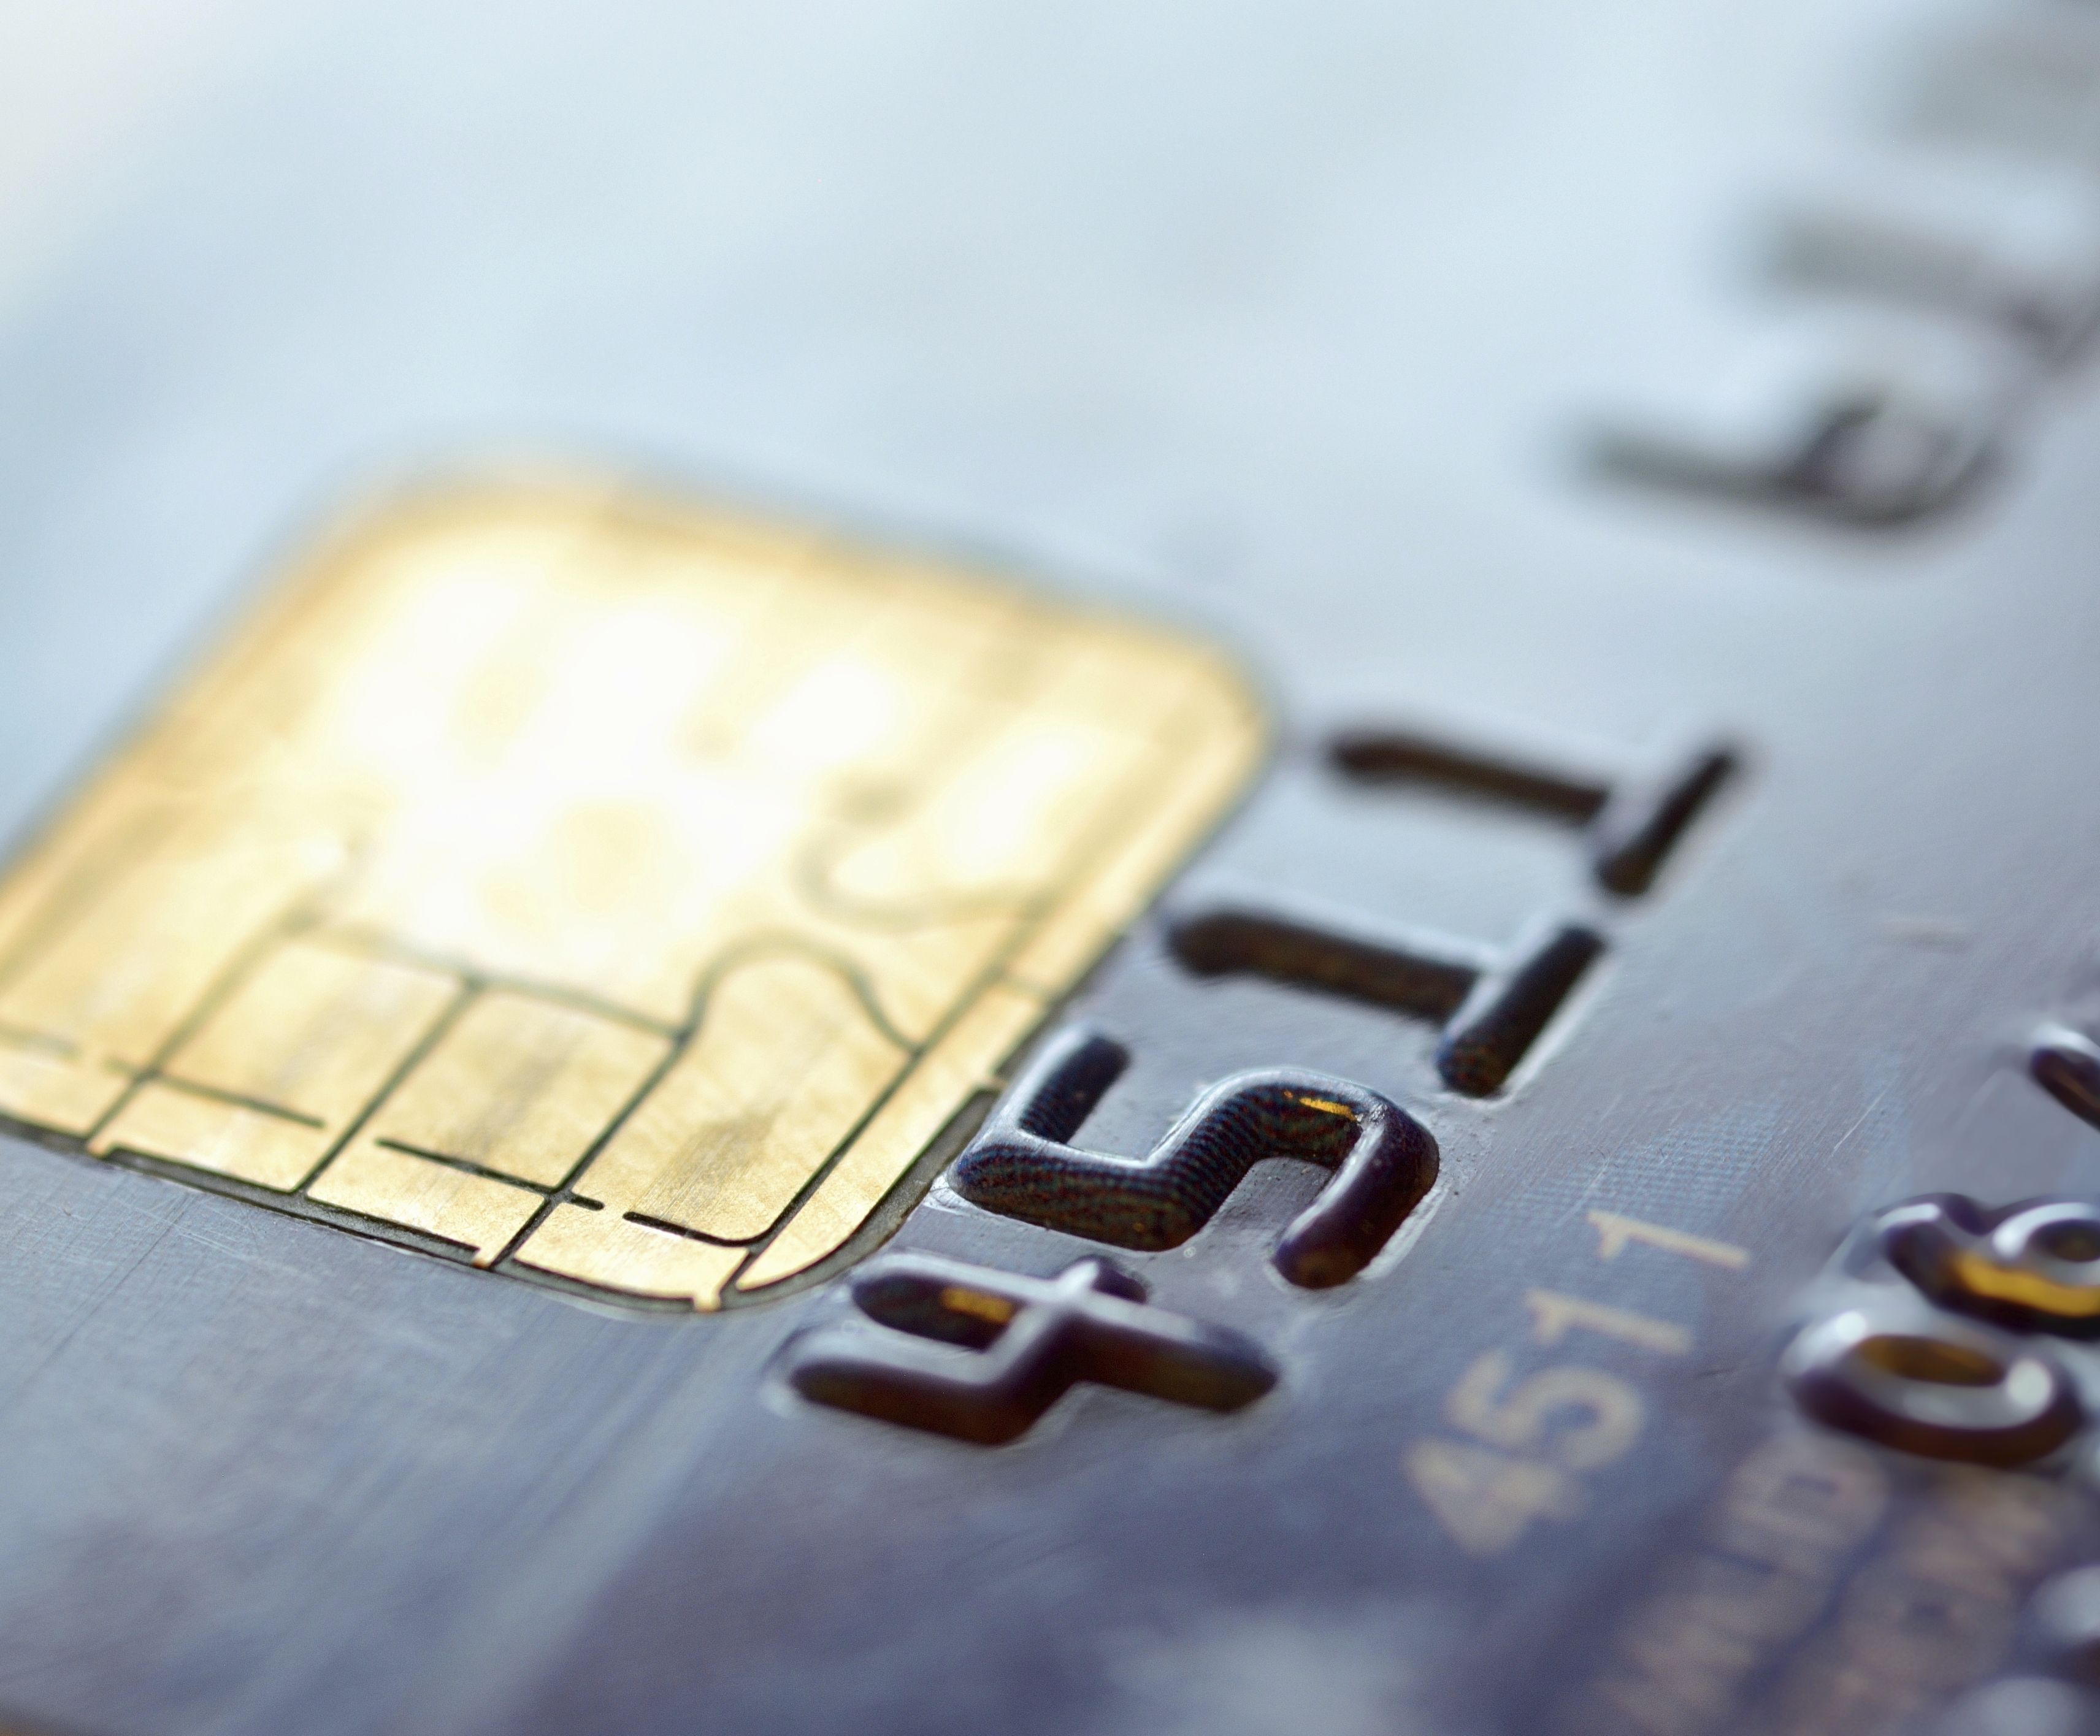 Applying for a Credit Card: Your Odds of Being Approved